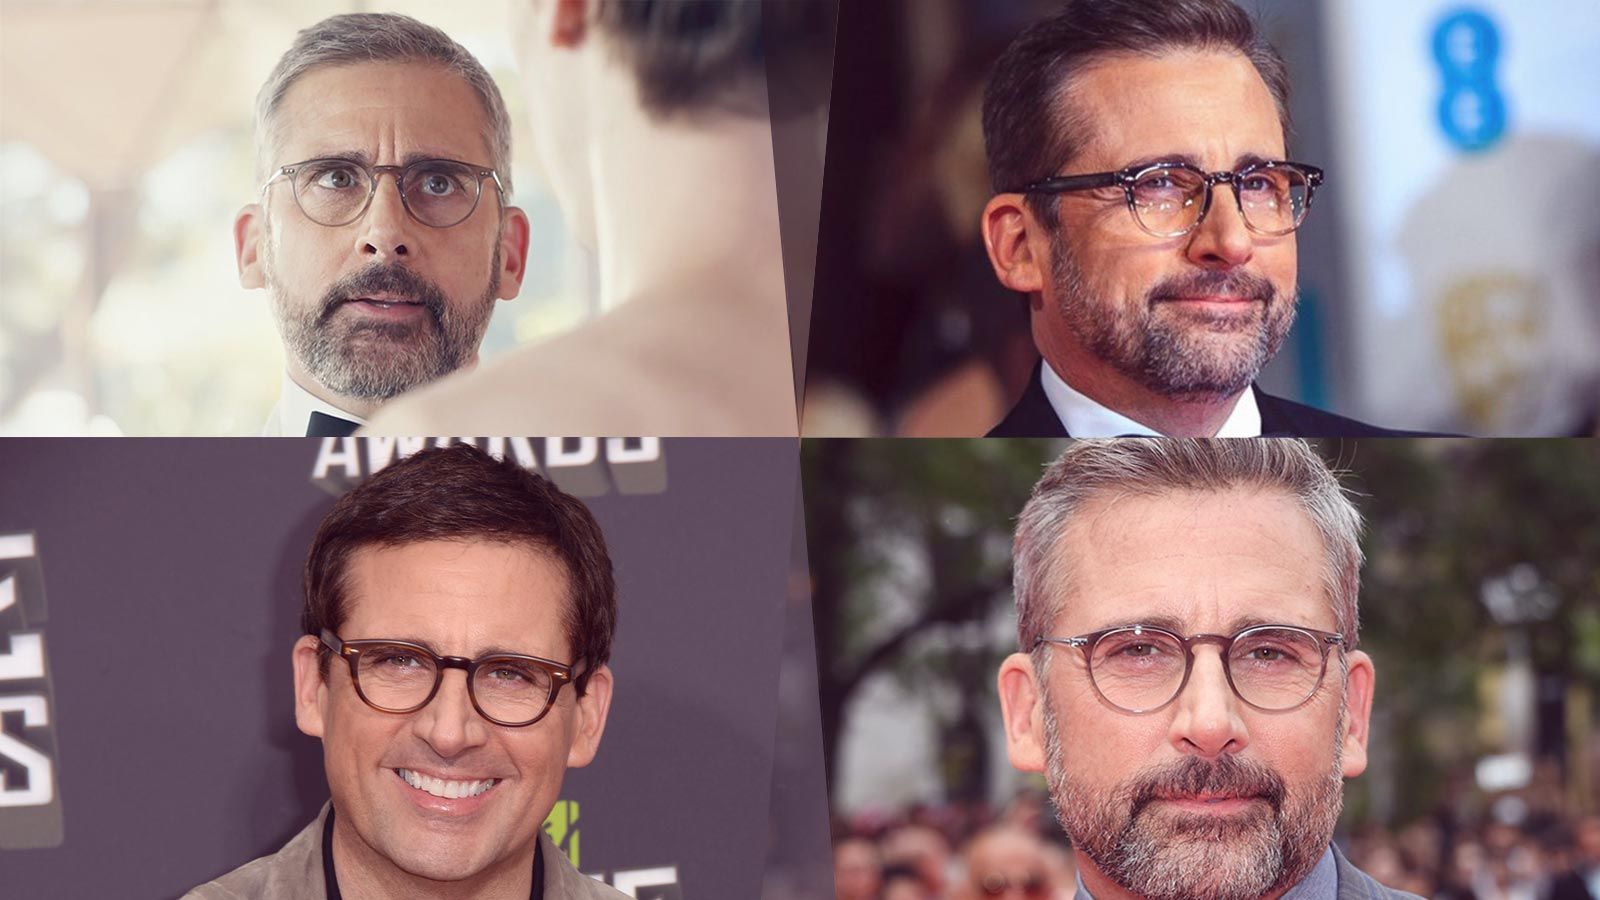 The Top 5 Steve Carell Glasses & Sunglasses for That Charismatic Appeal